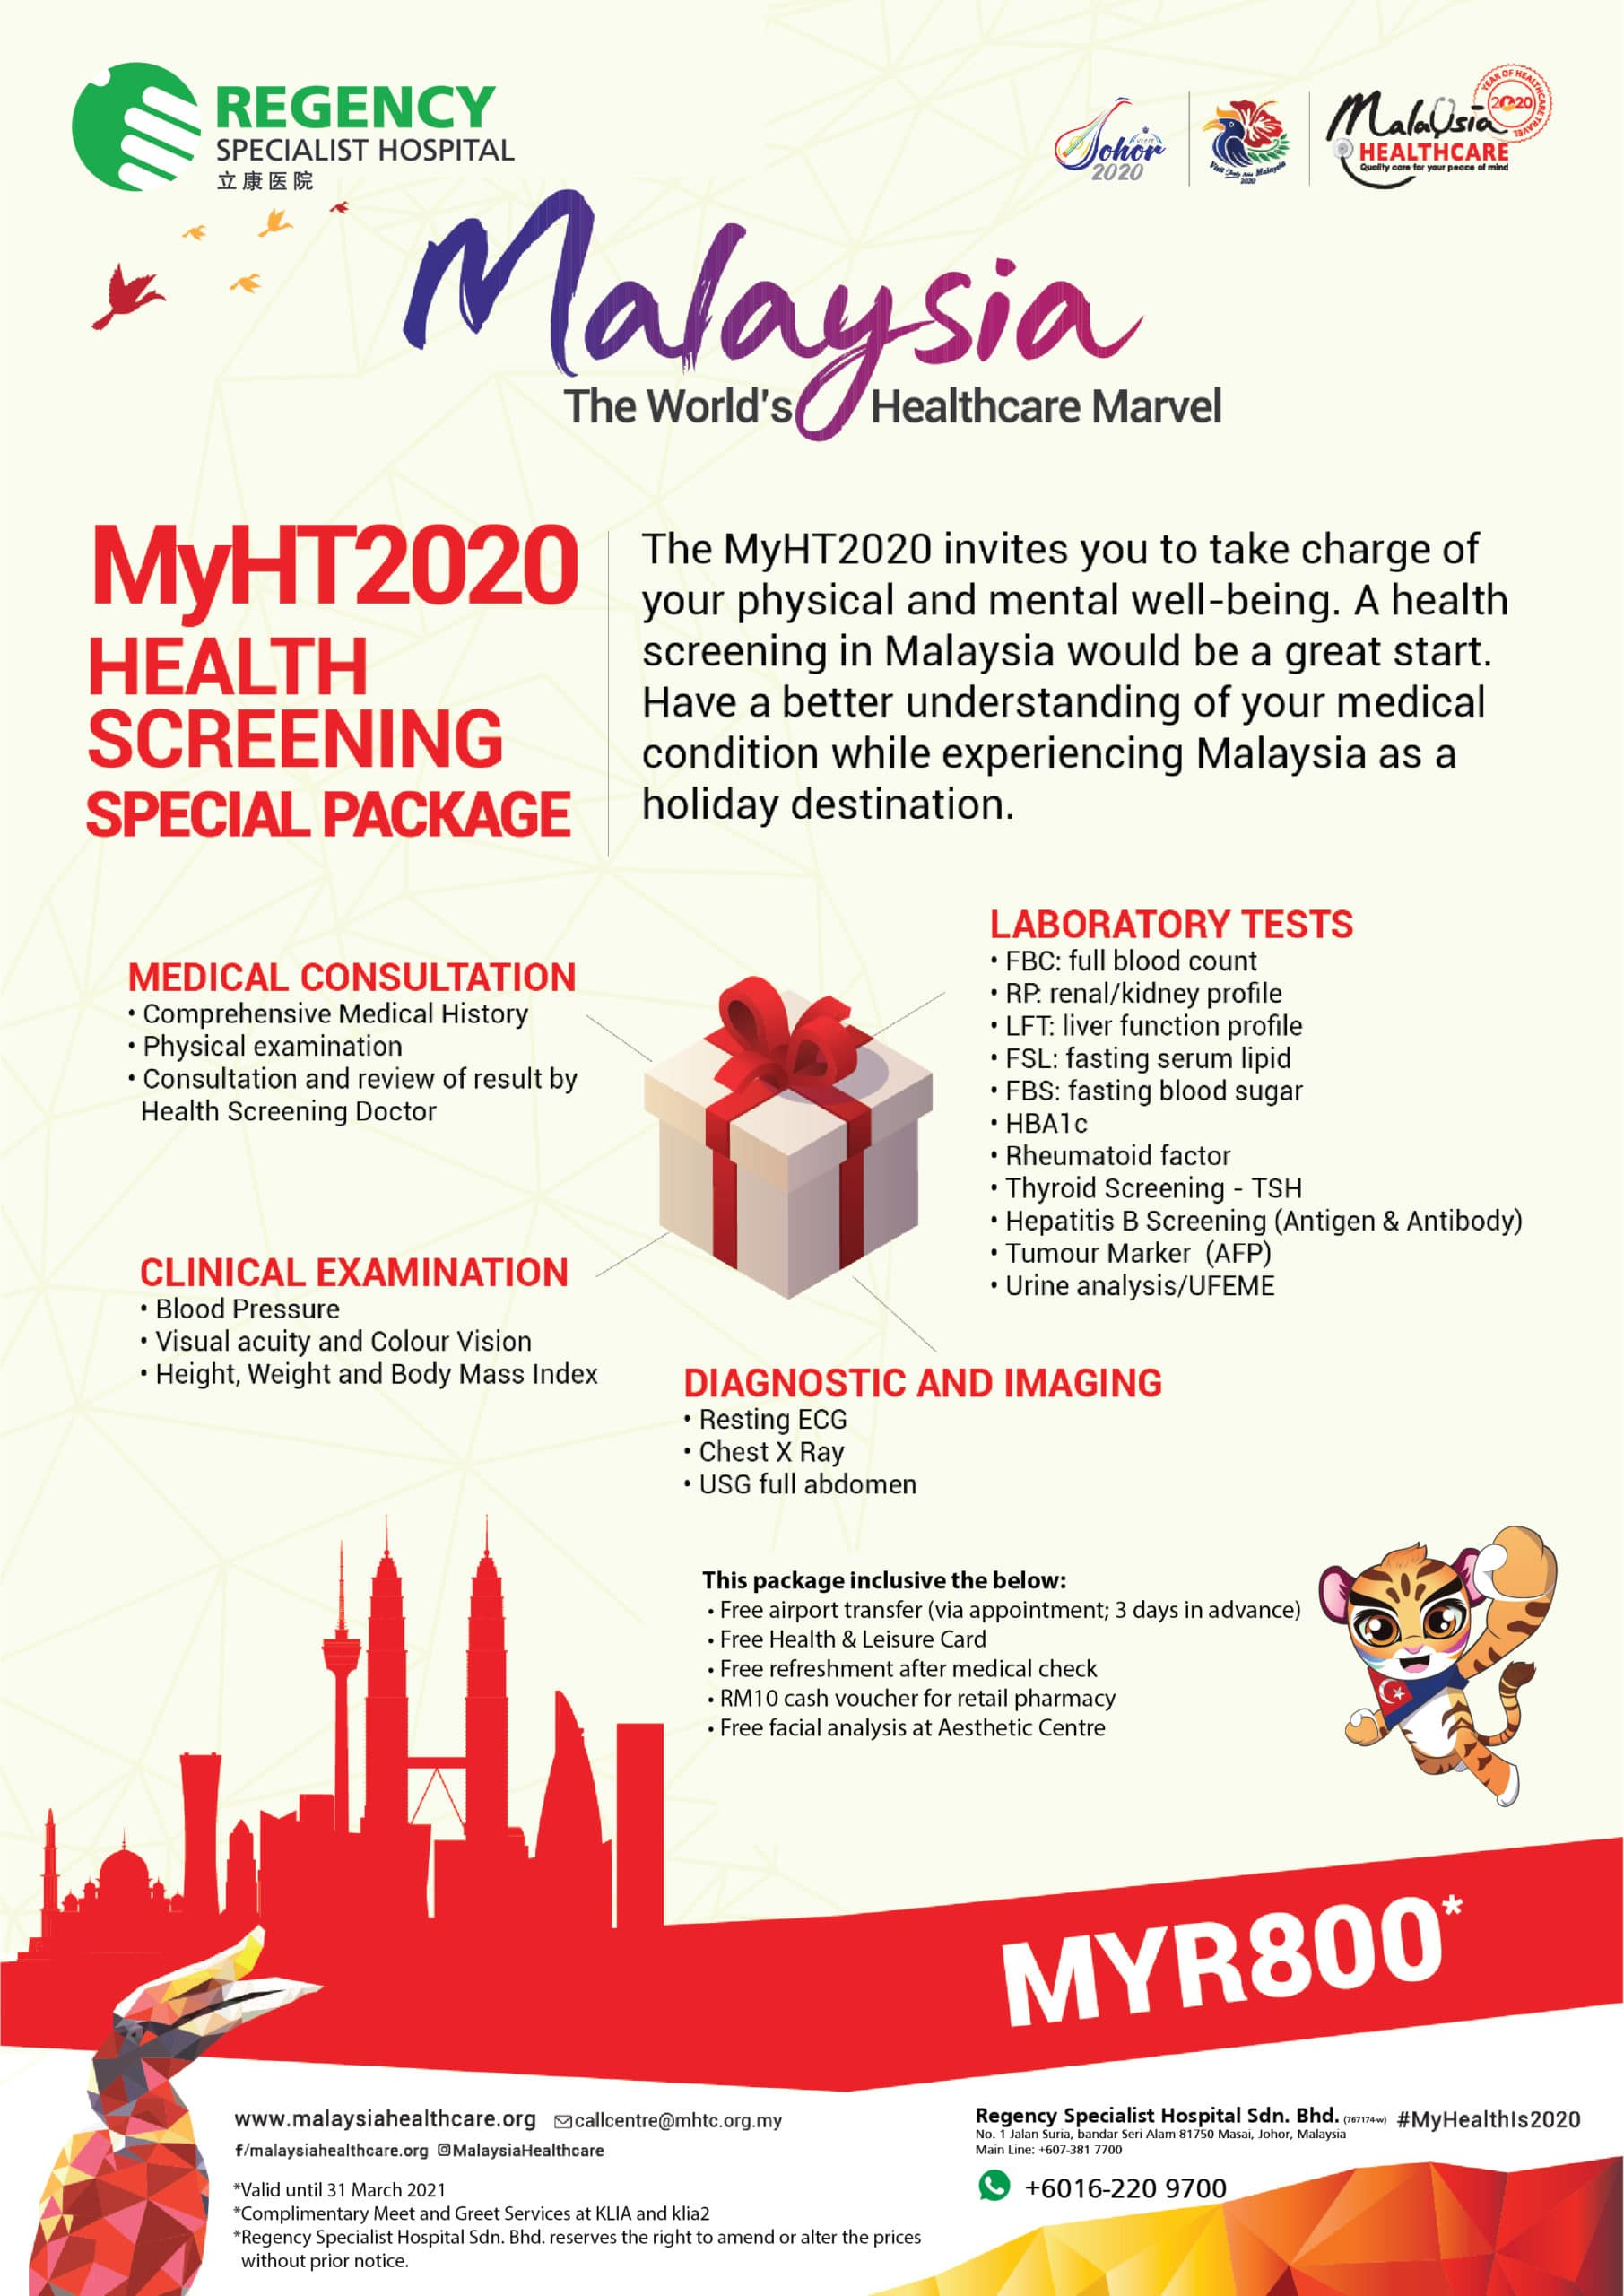 MyHT 2020 for Medical Tourist/Foreign Visitors